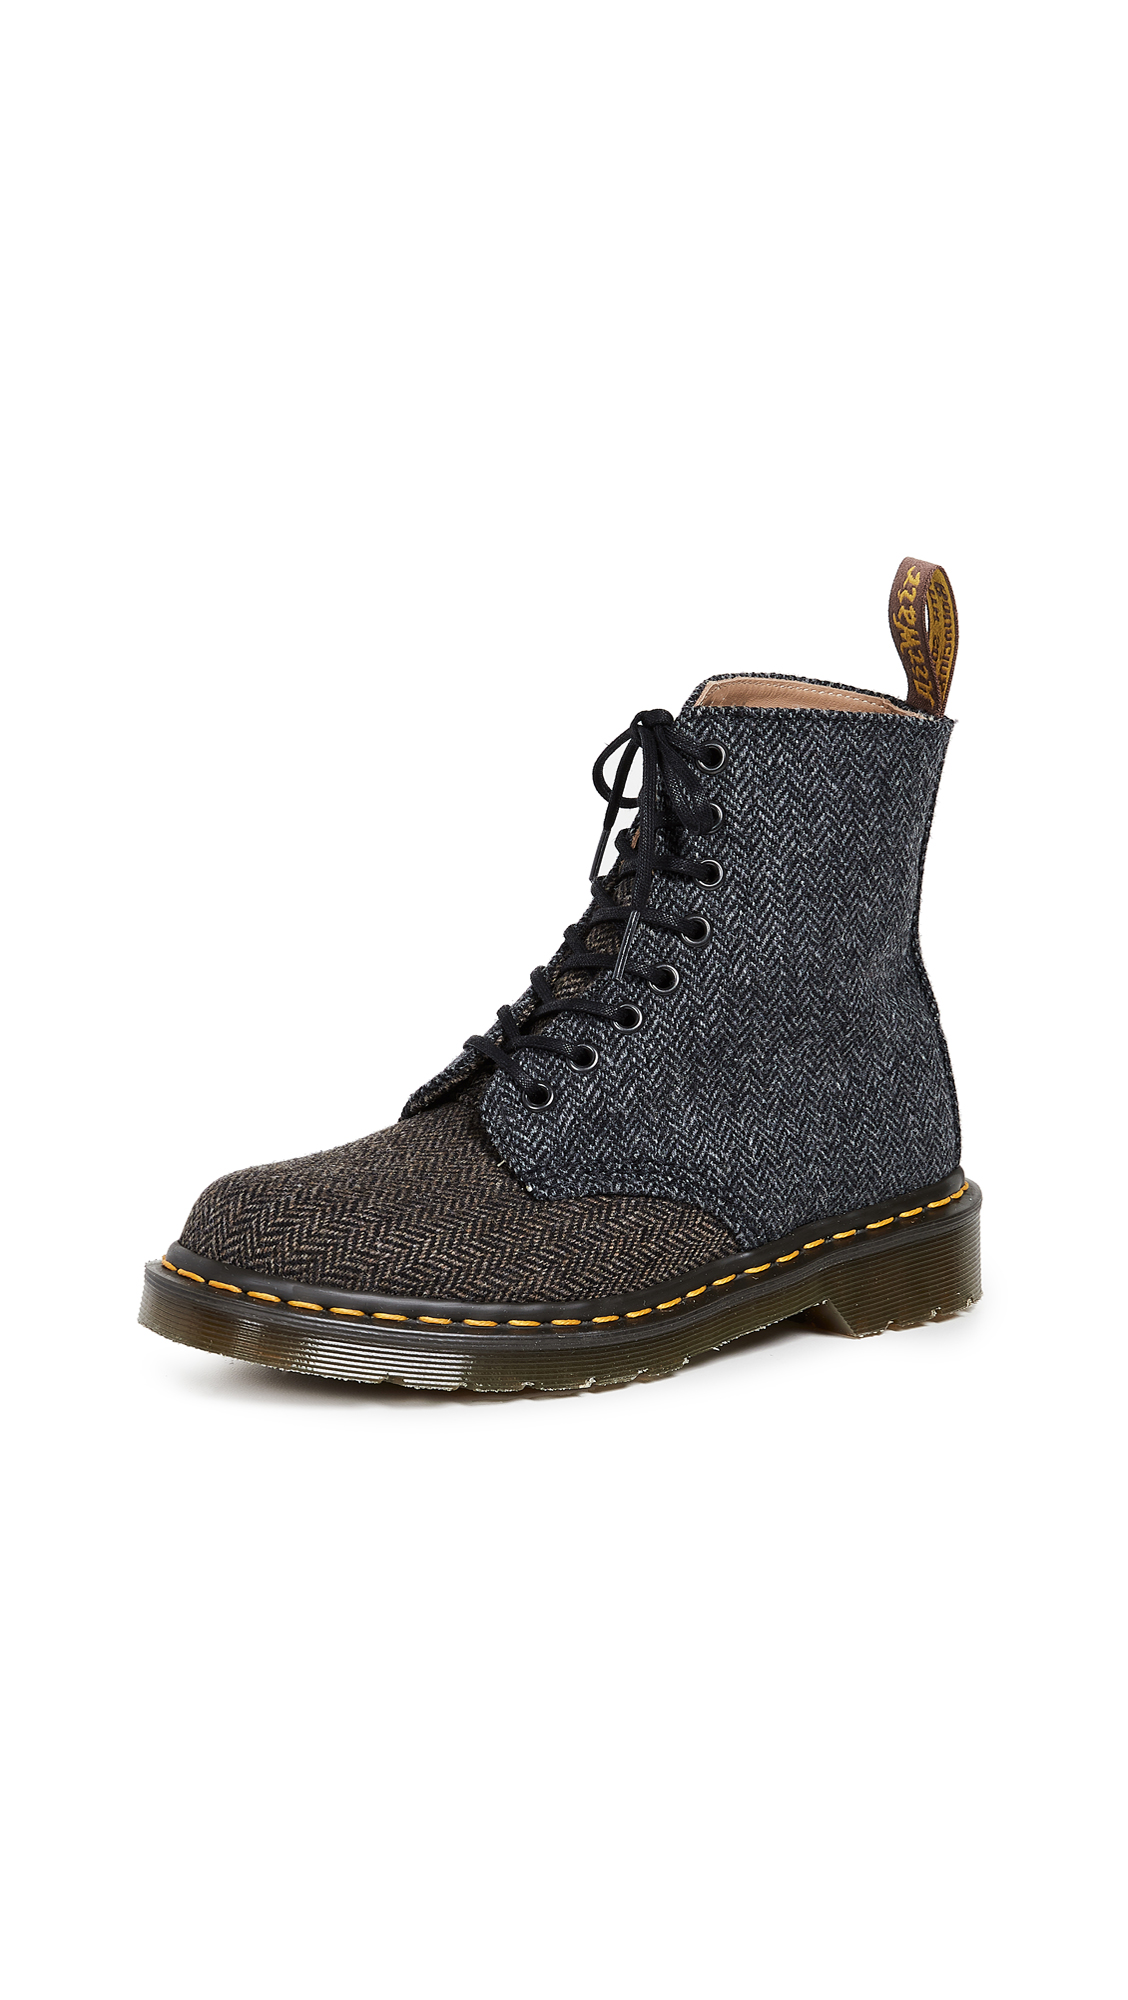 Dr. Martens 1460 Pascal 8 Eye Boots - Grey/Brown